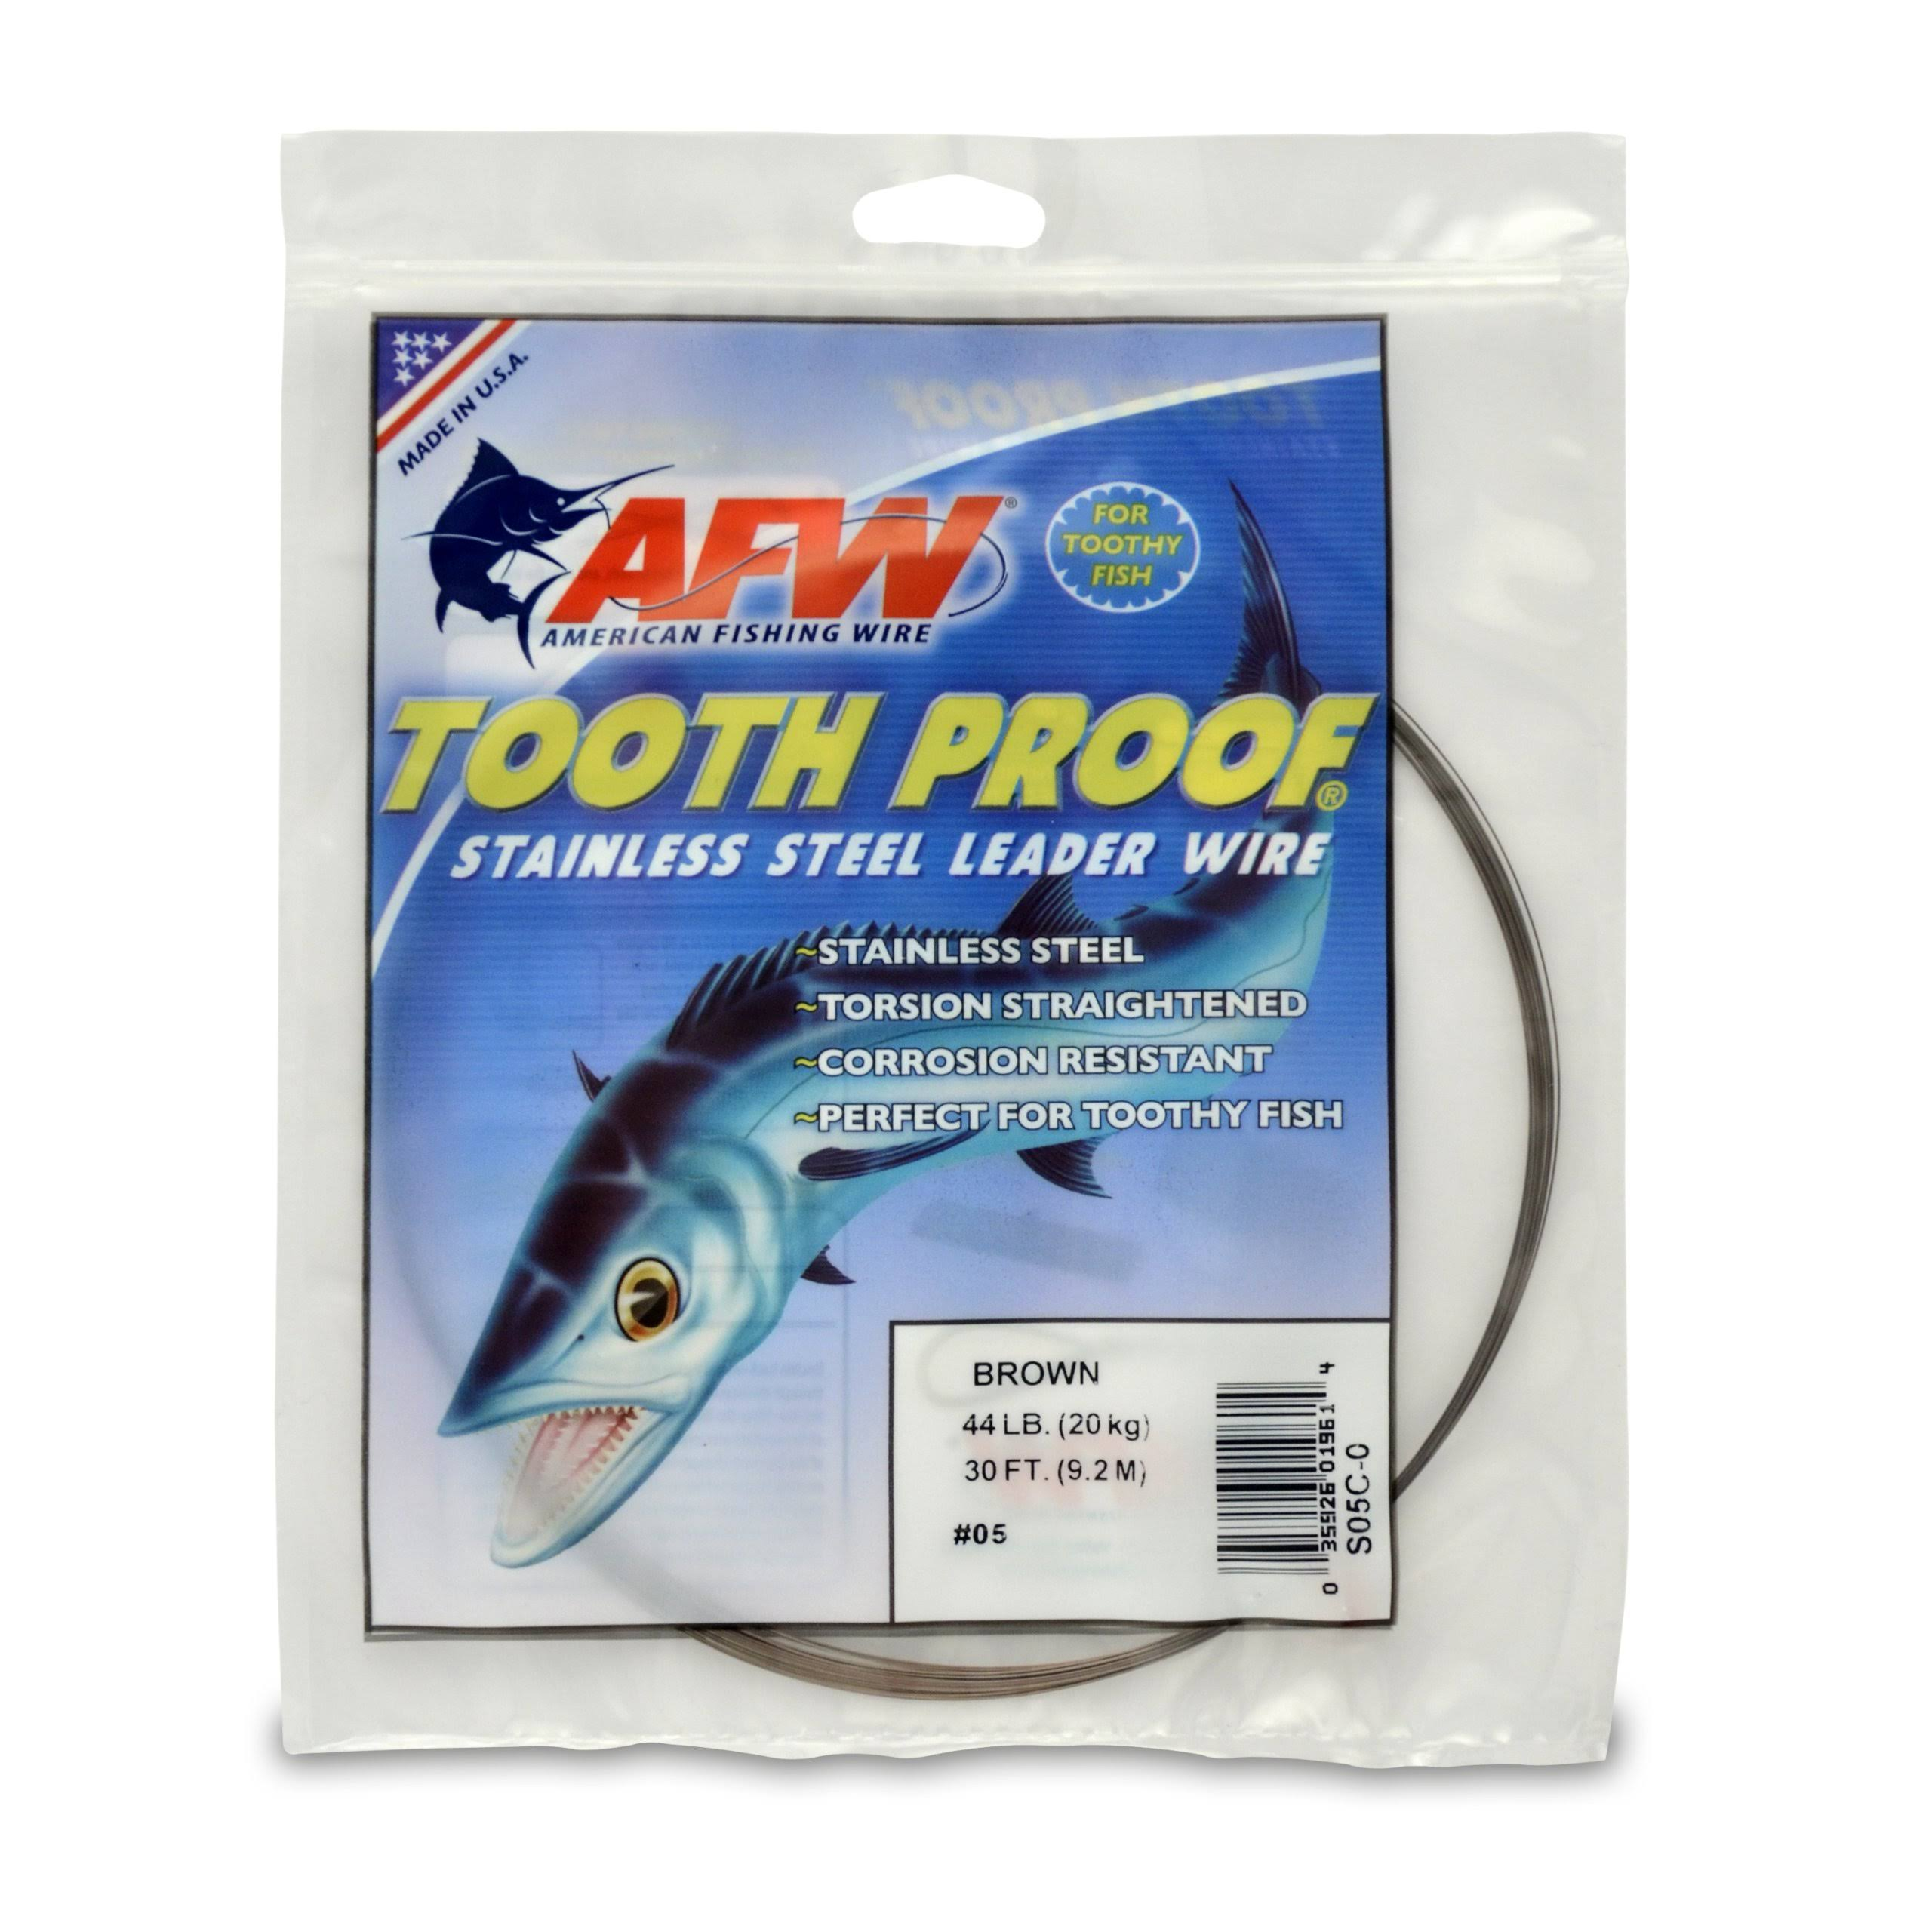 American Fishing Wire Tooth Proof Stainless Steel Wire